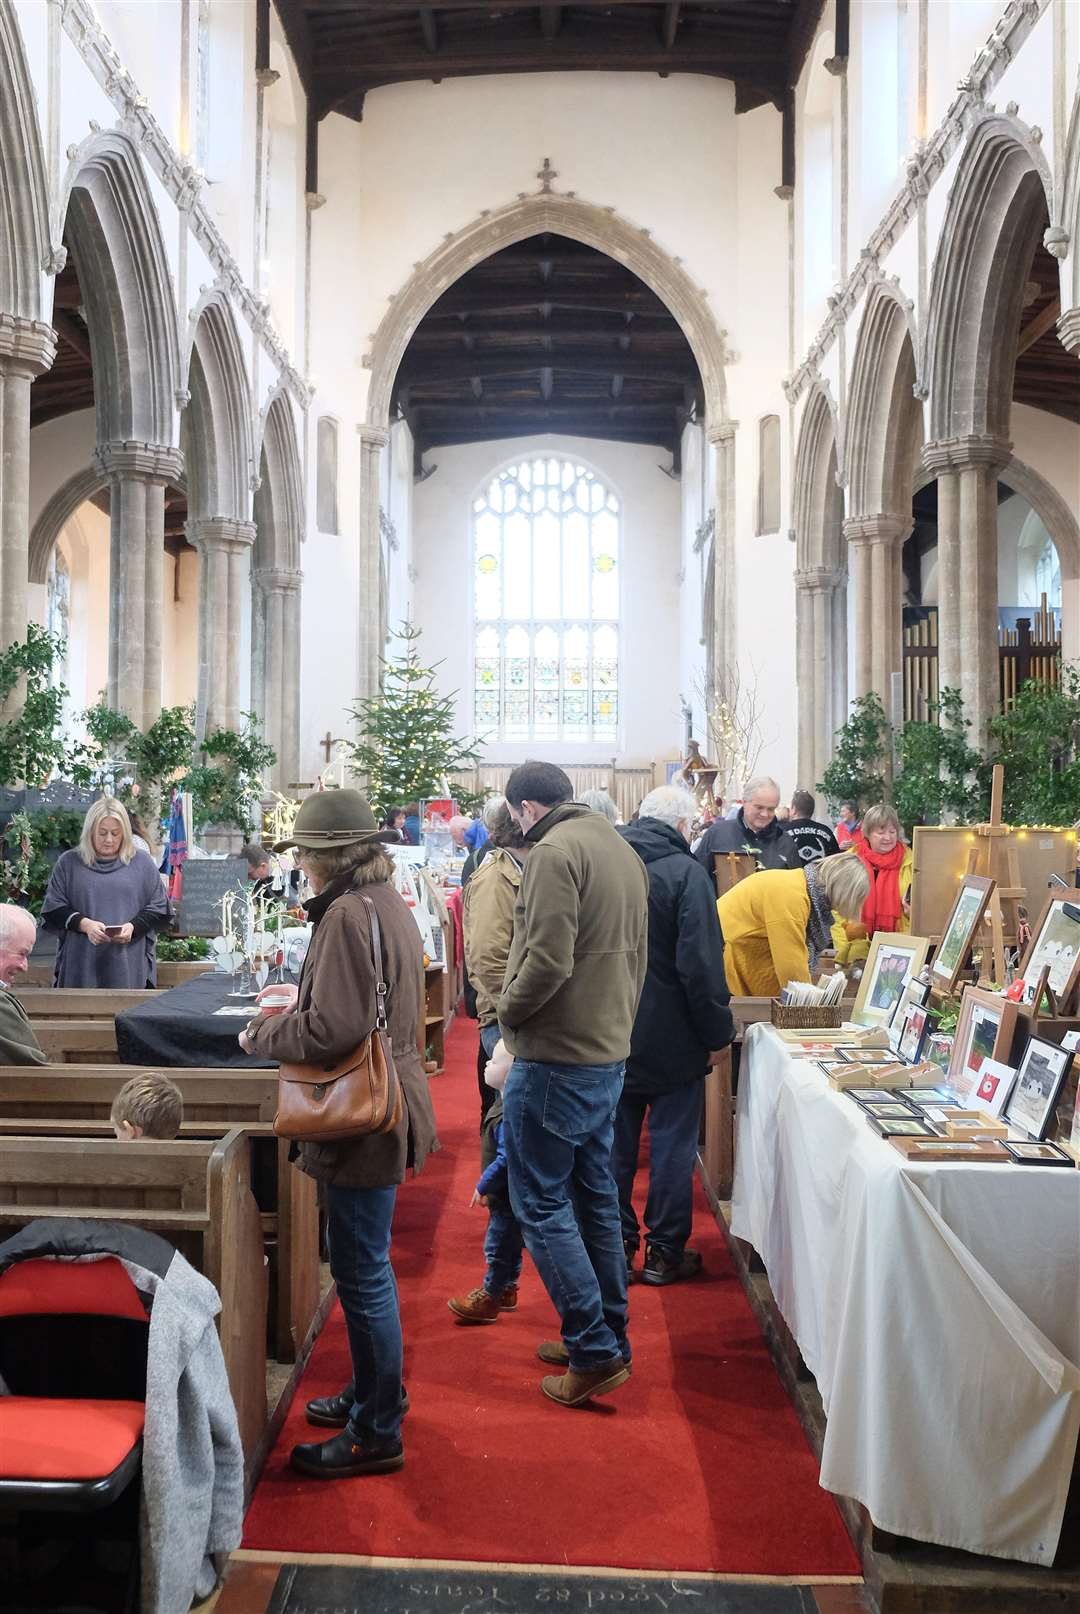 Clare Christmas Fayre - Visitors enjoy the fayre in St Peter and St Pauls Church in Clare..Pic - Richard Marsham. (5724020)